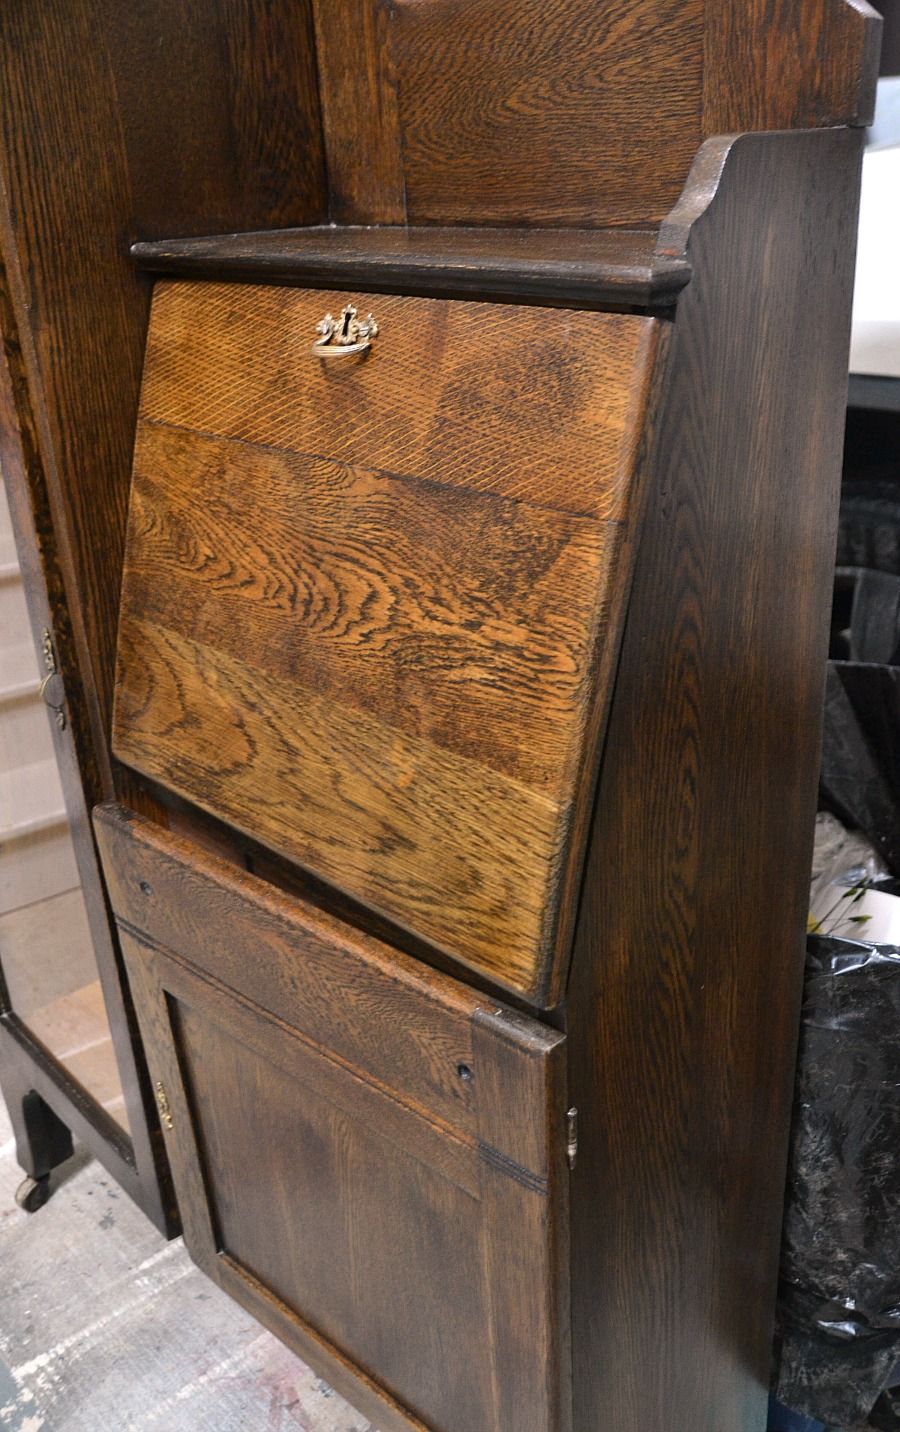 Antique secretary desk, refinished secretary, refinishing antiques, before & after secretary